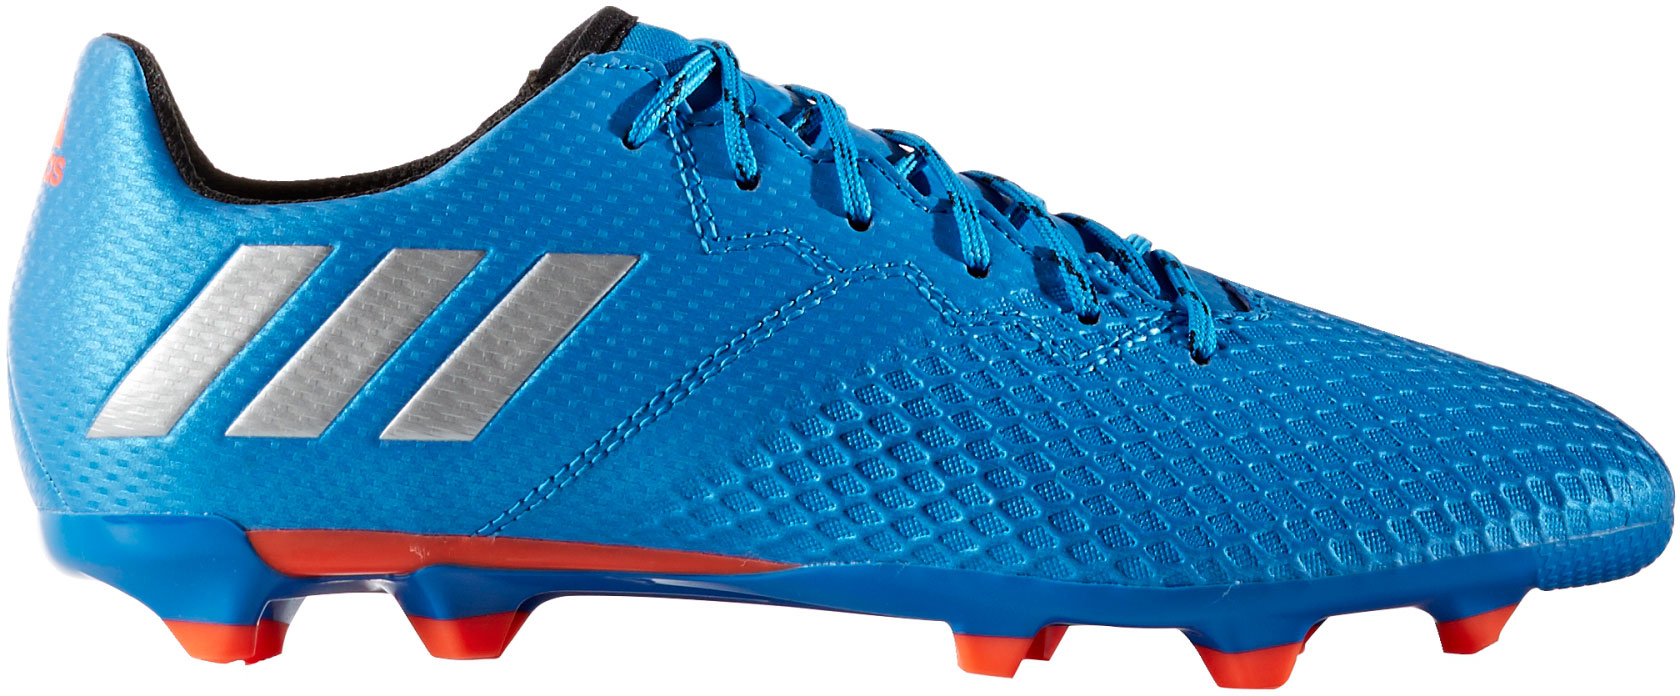 brand new 7bce3 25dc9 Boys adidas Messi Junior 16.3 FG Blue Silver Moulded Studs Soccer Football  Boots